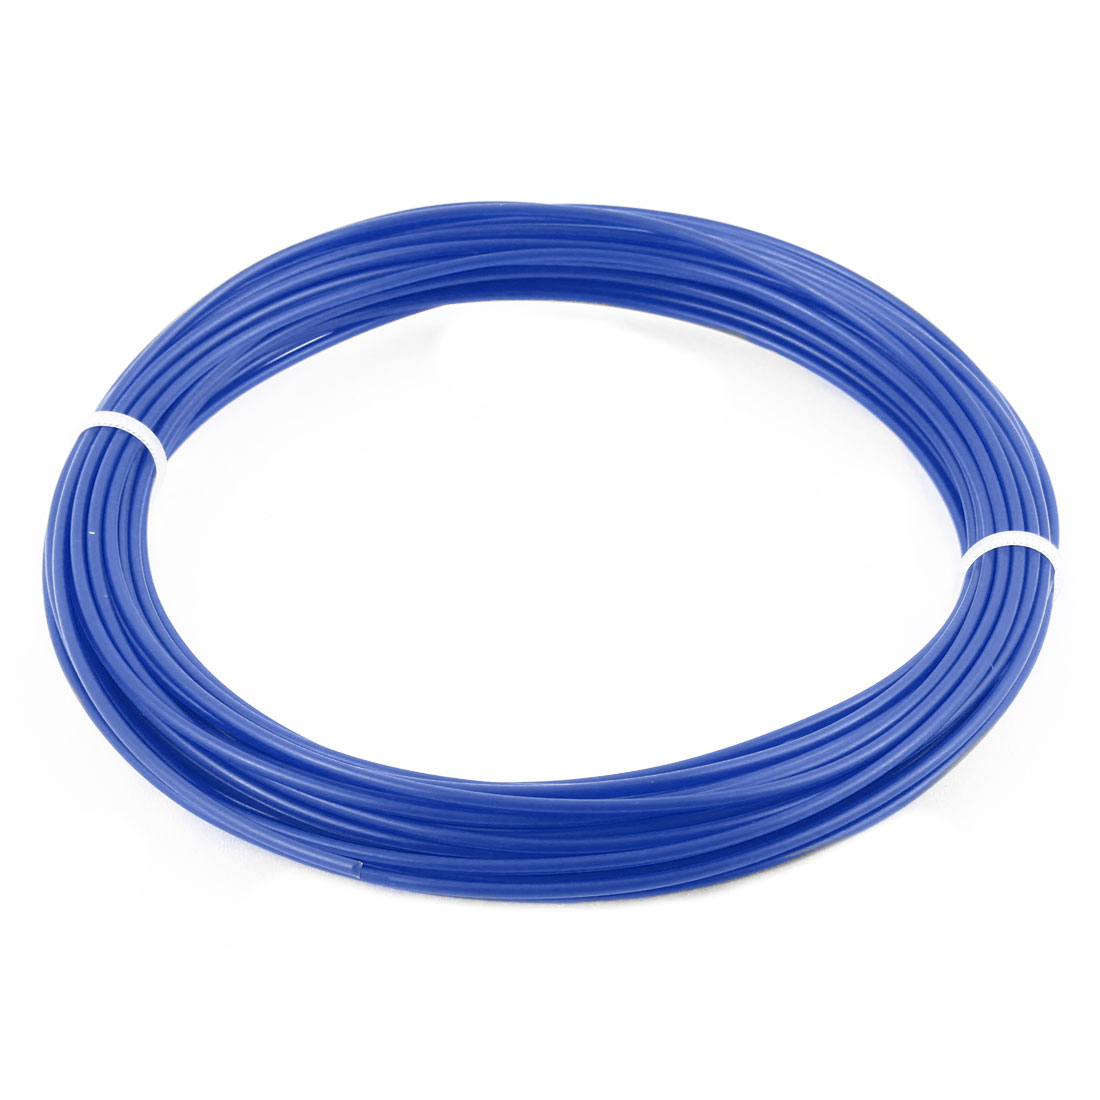 10m 3D Printer Pen Painting Filament Refills PLA Printing Material Blue